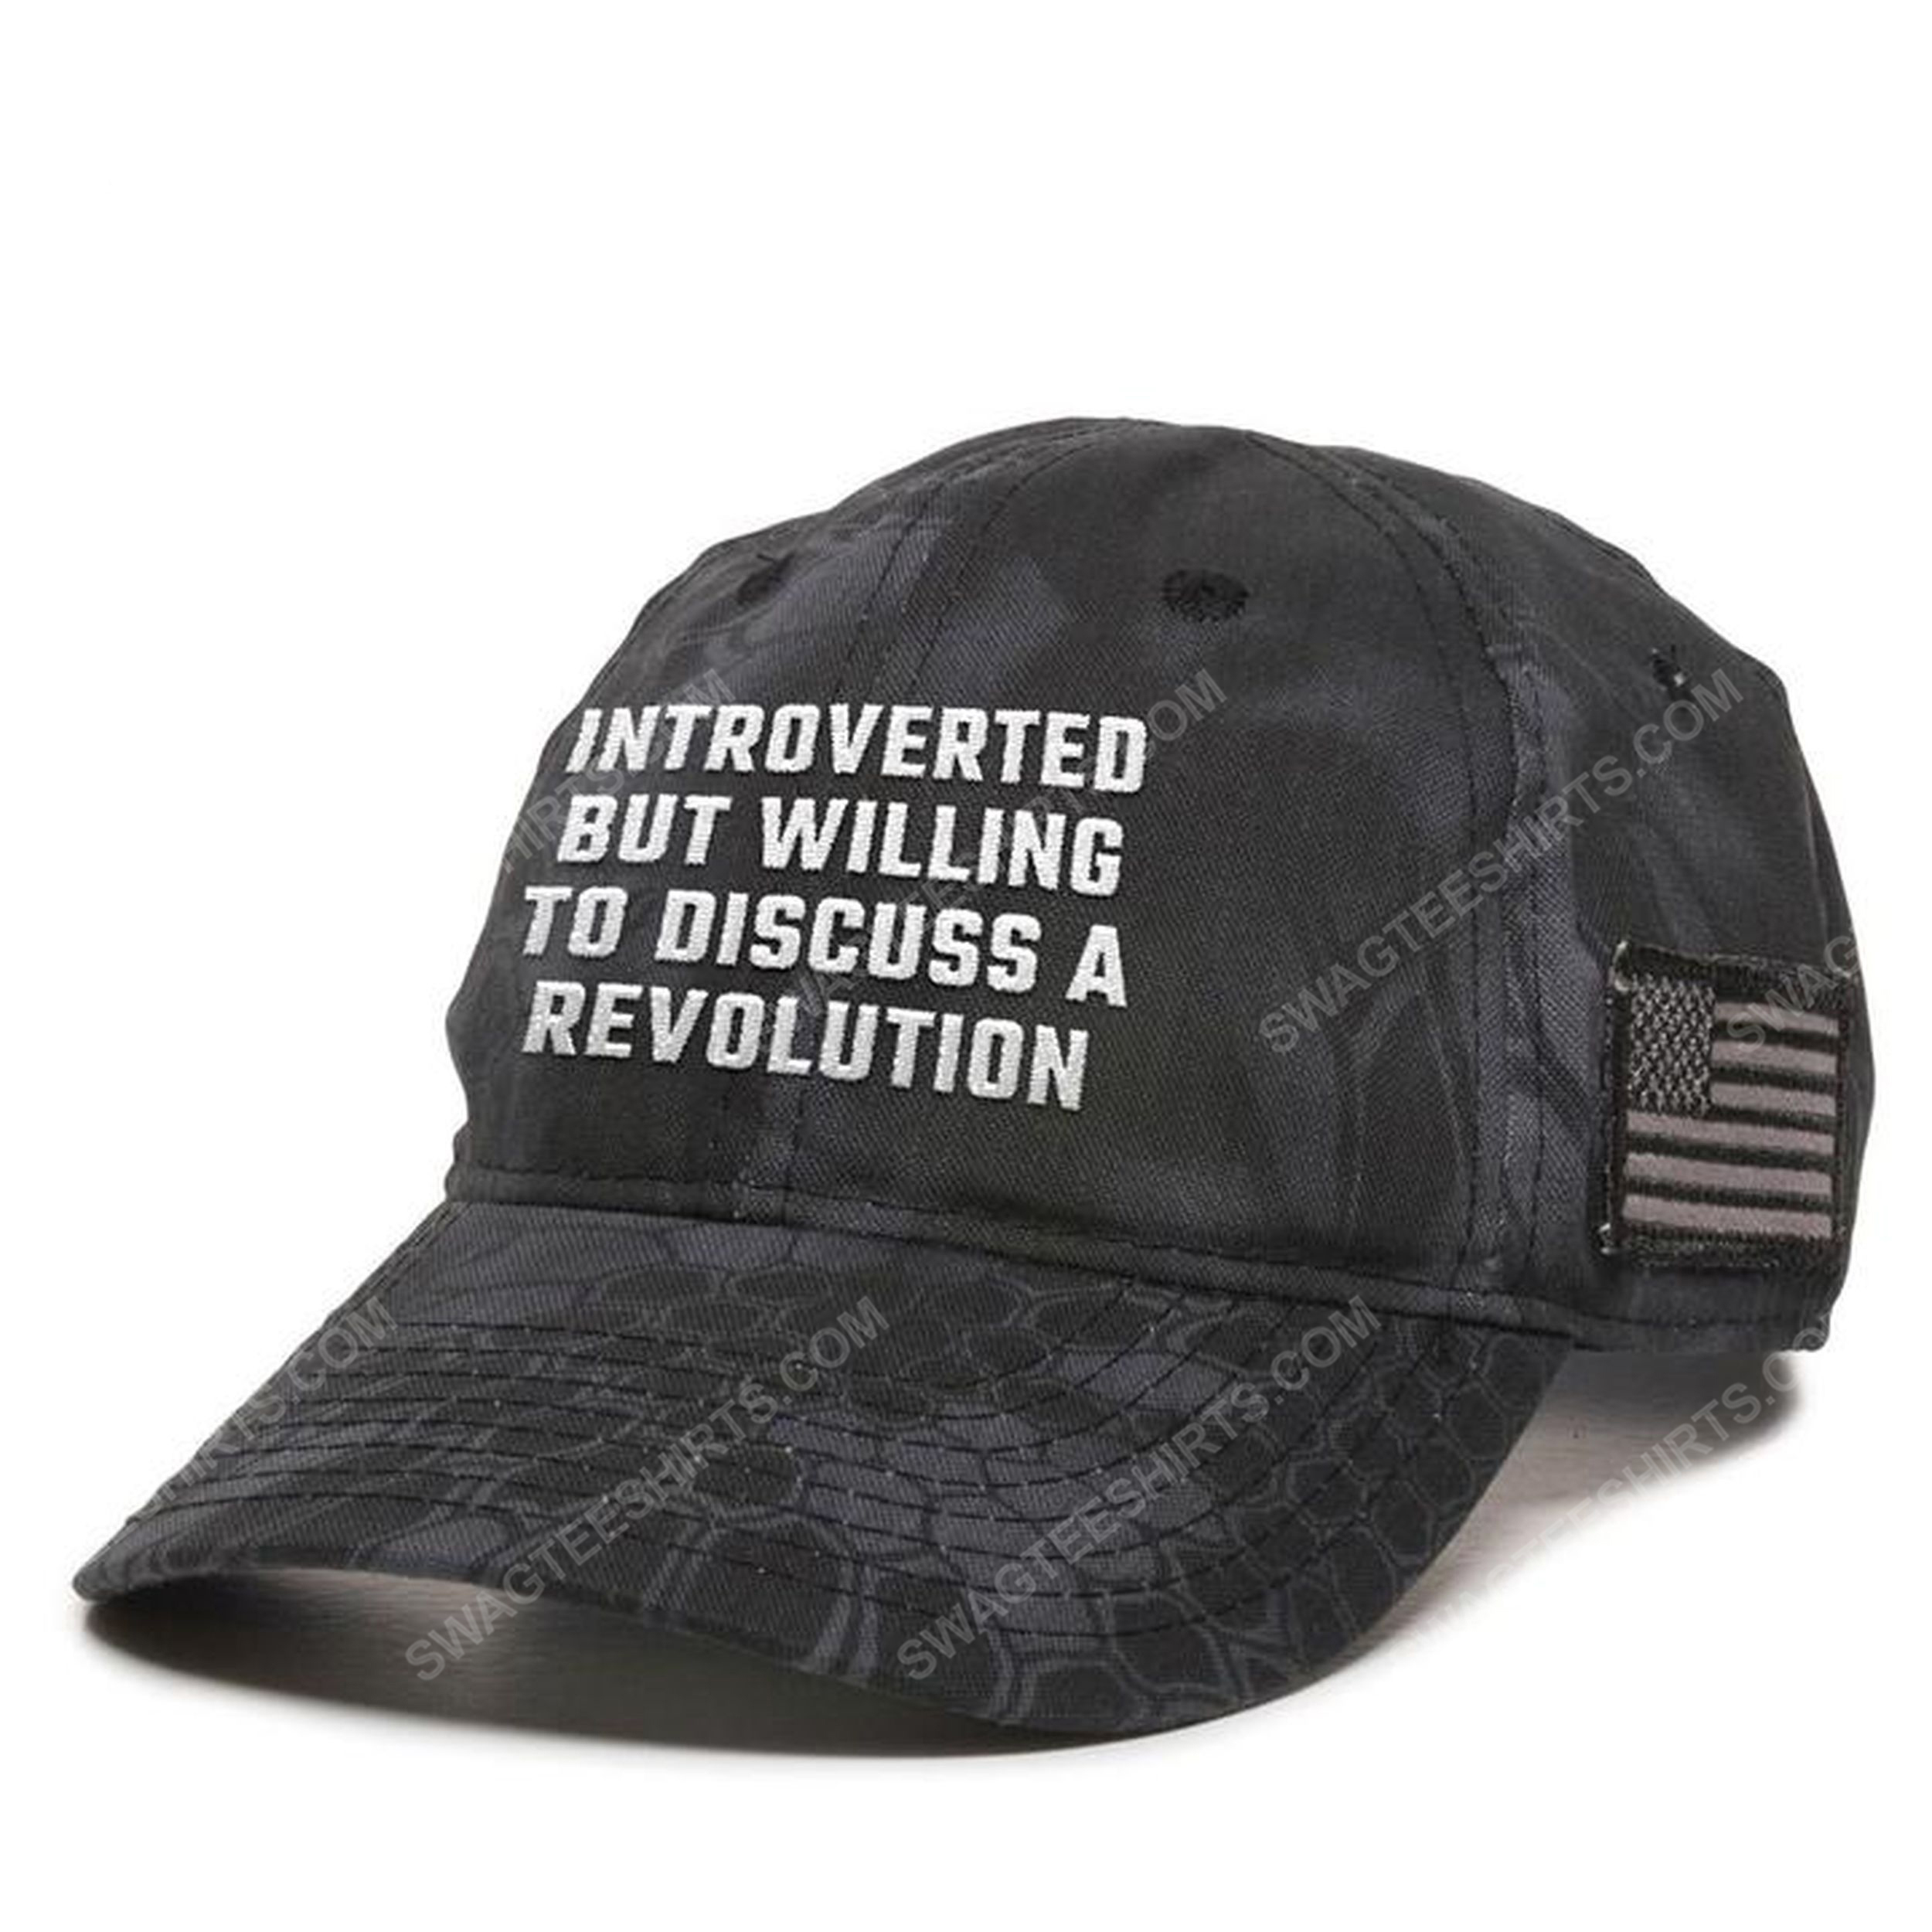 Introverted but willing to discuss a revolution full print classic hat 1 - Copy